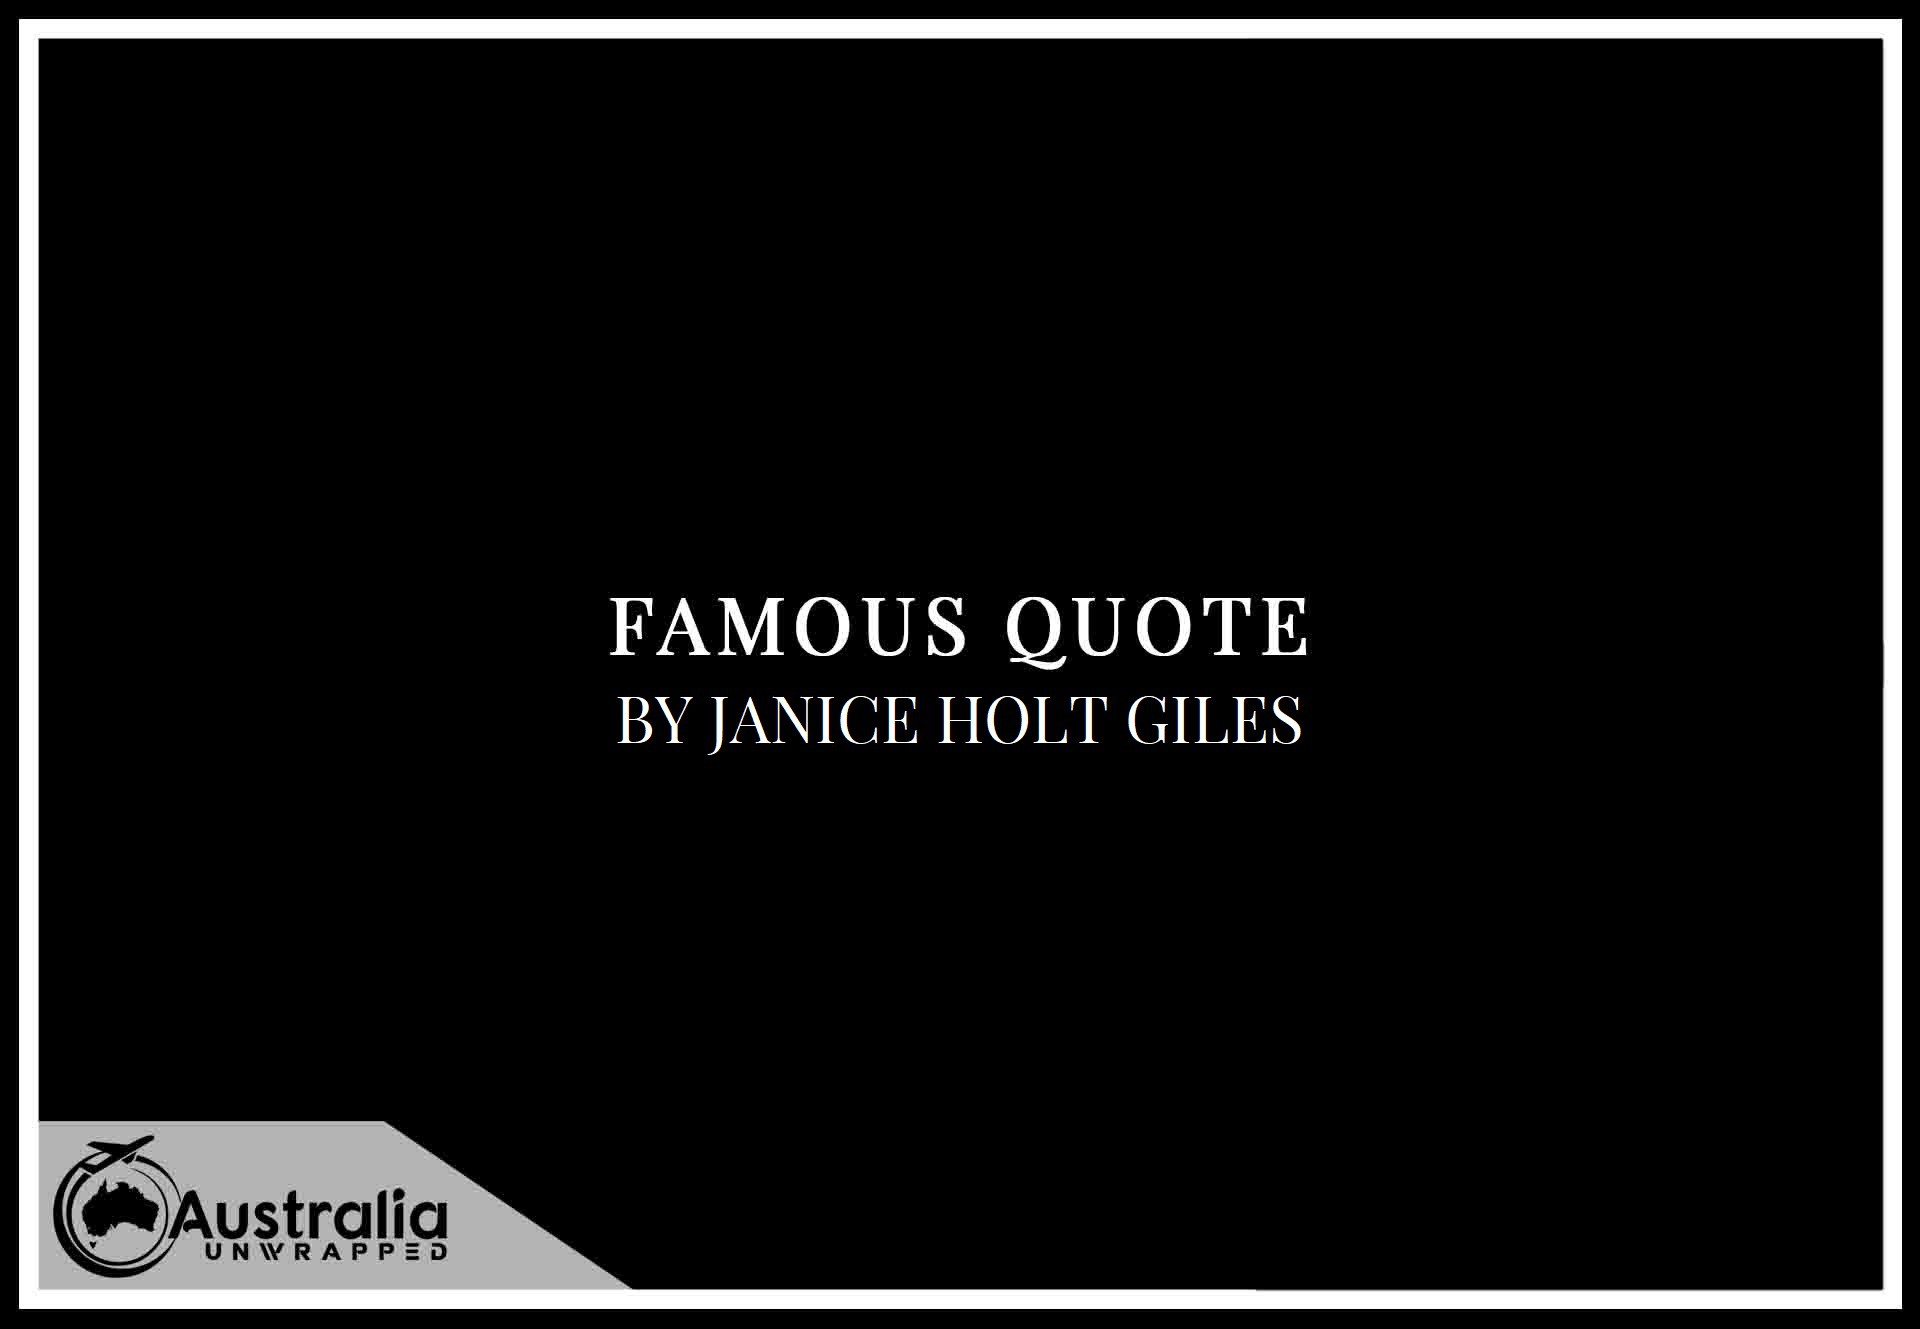 Top 1 Famous Quotes by Author Janice Holt Giles